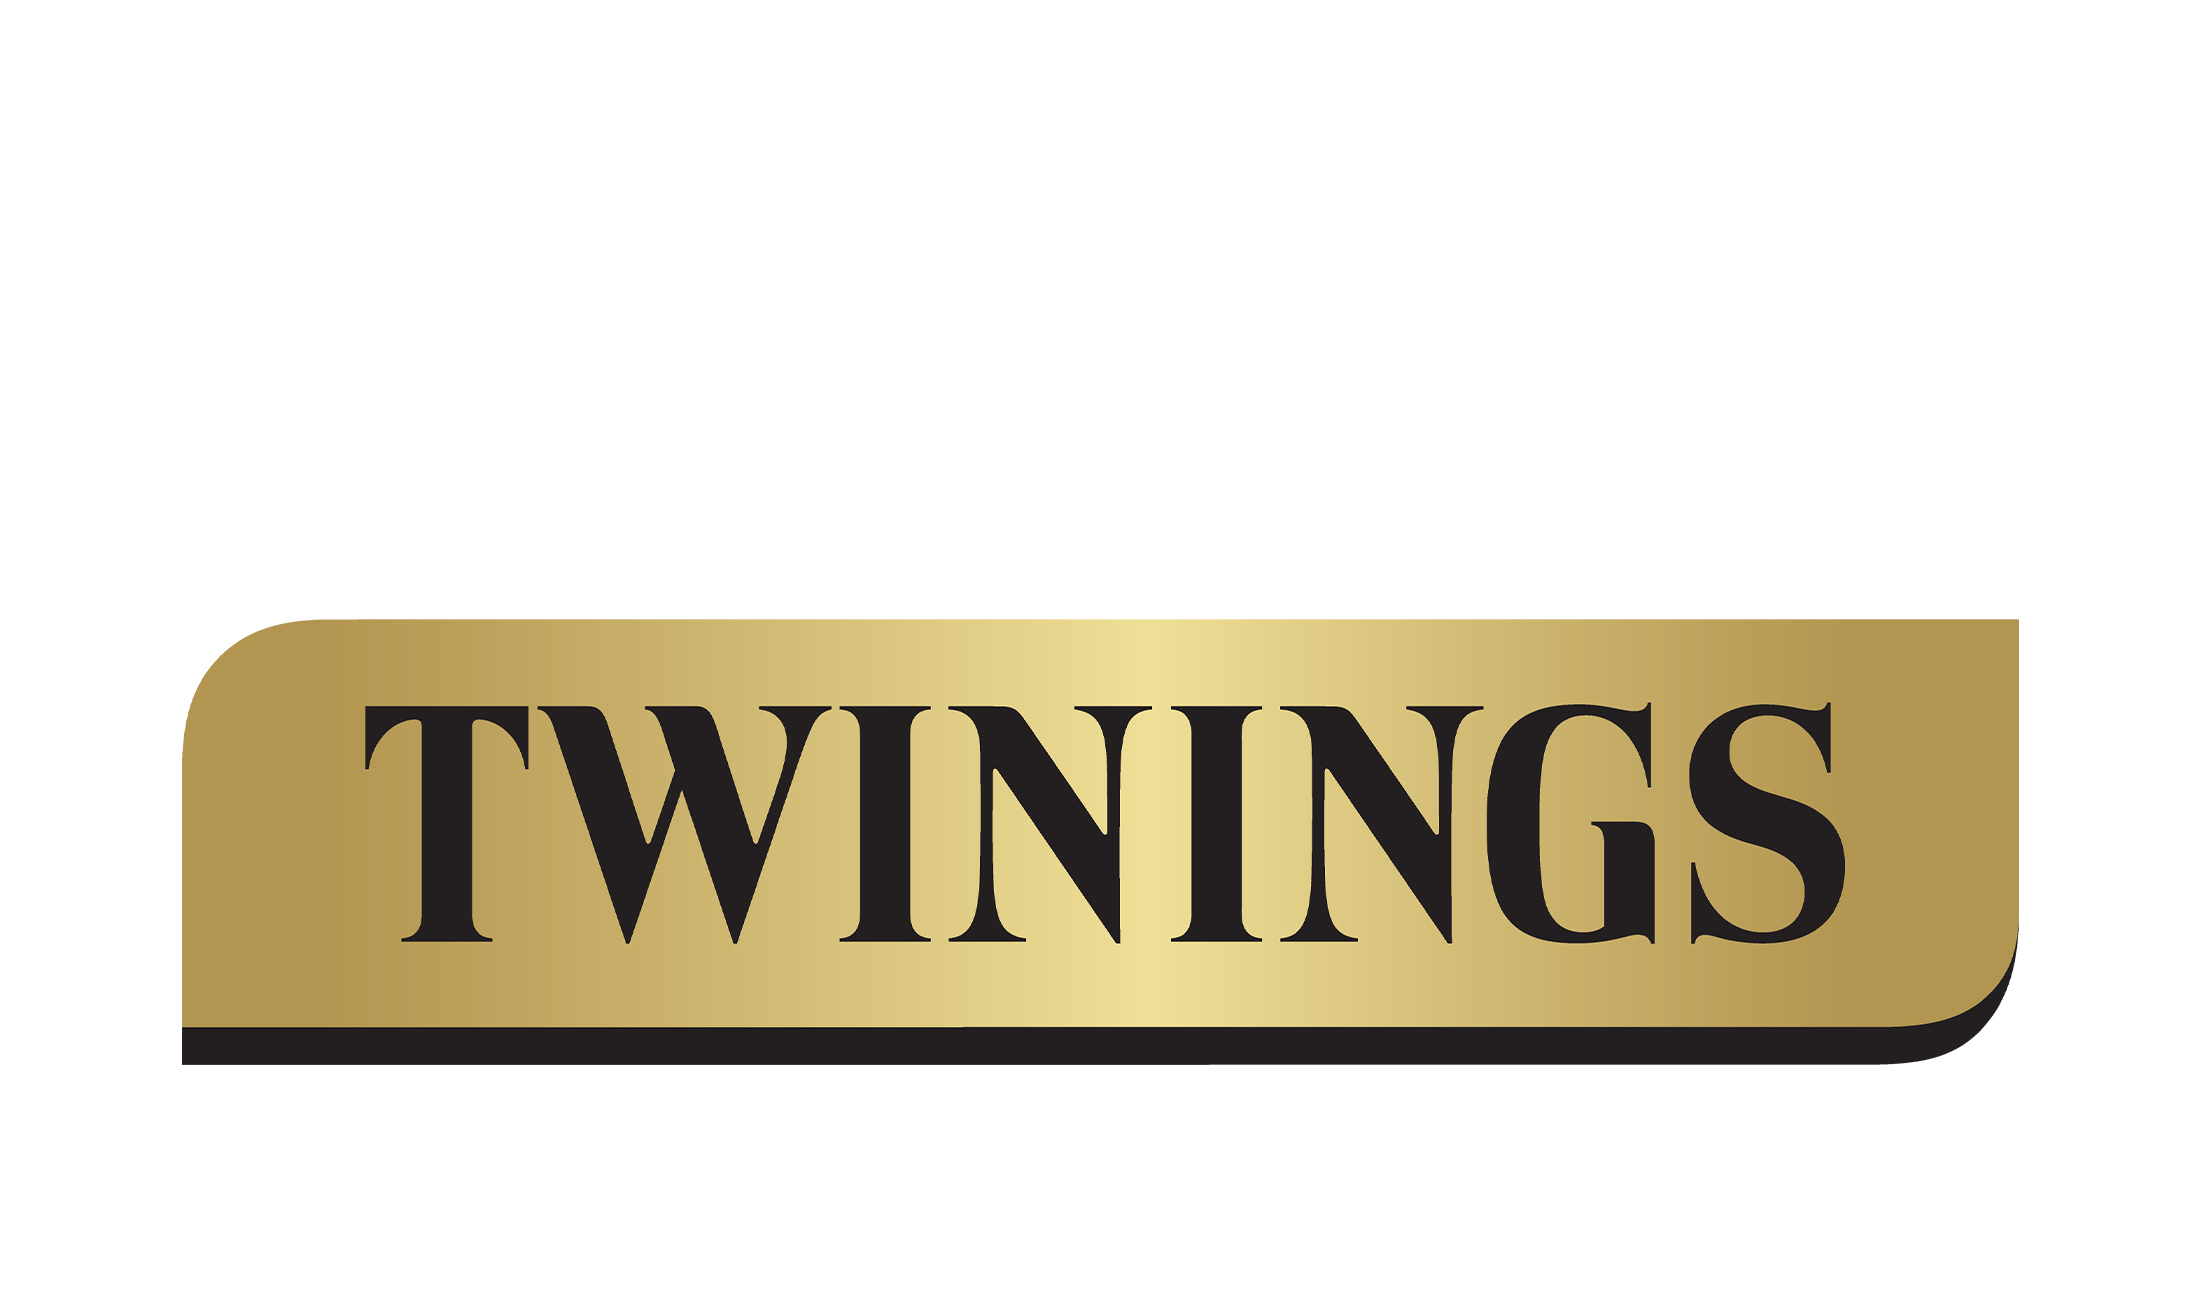 Twinings corporate logo